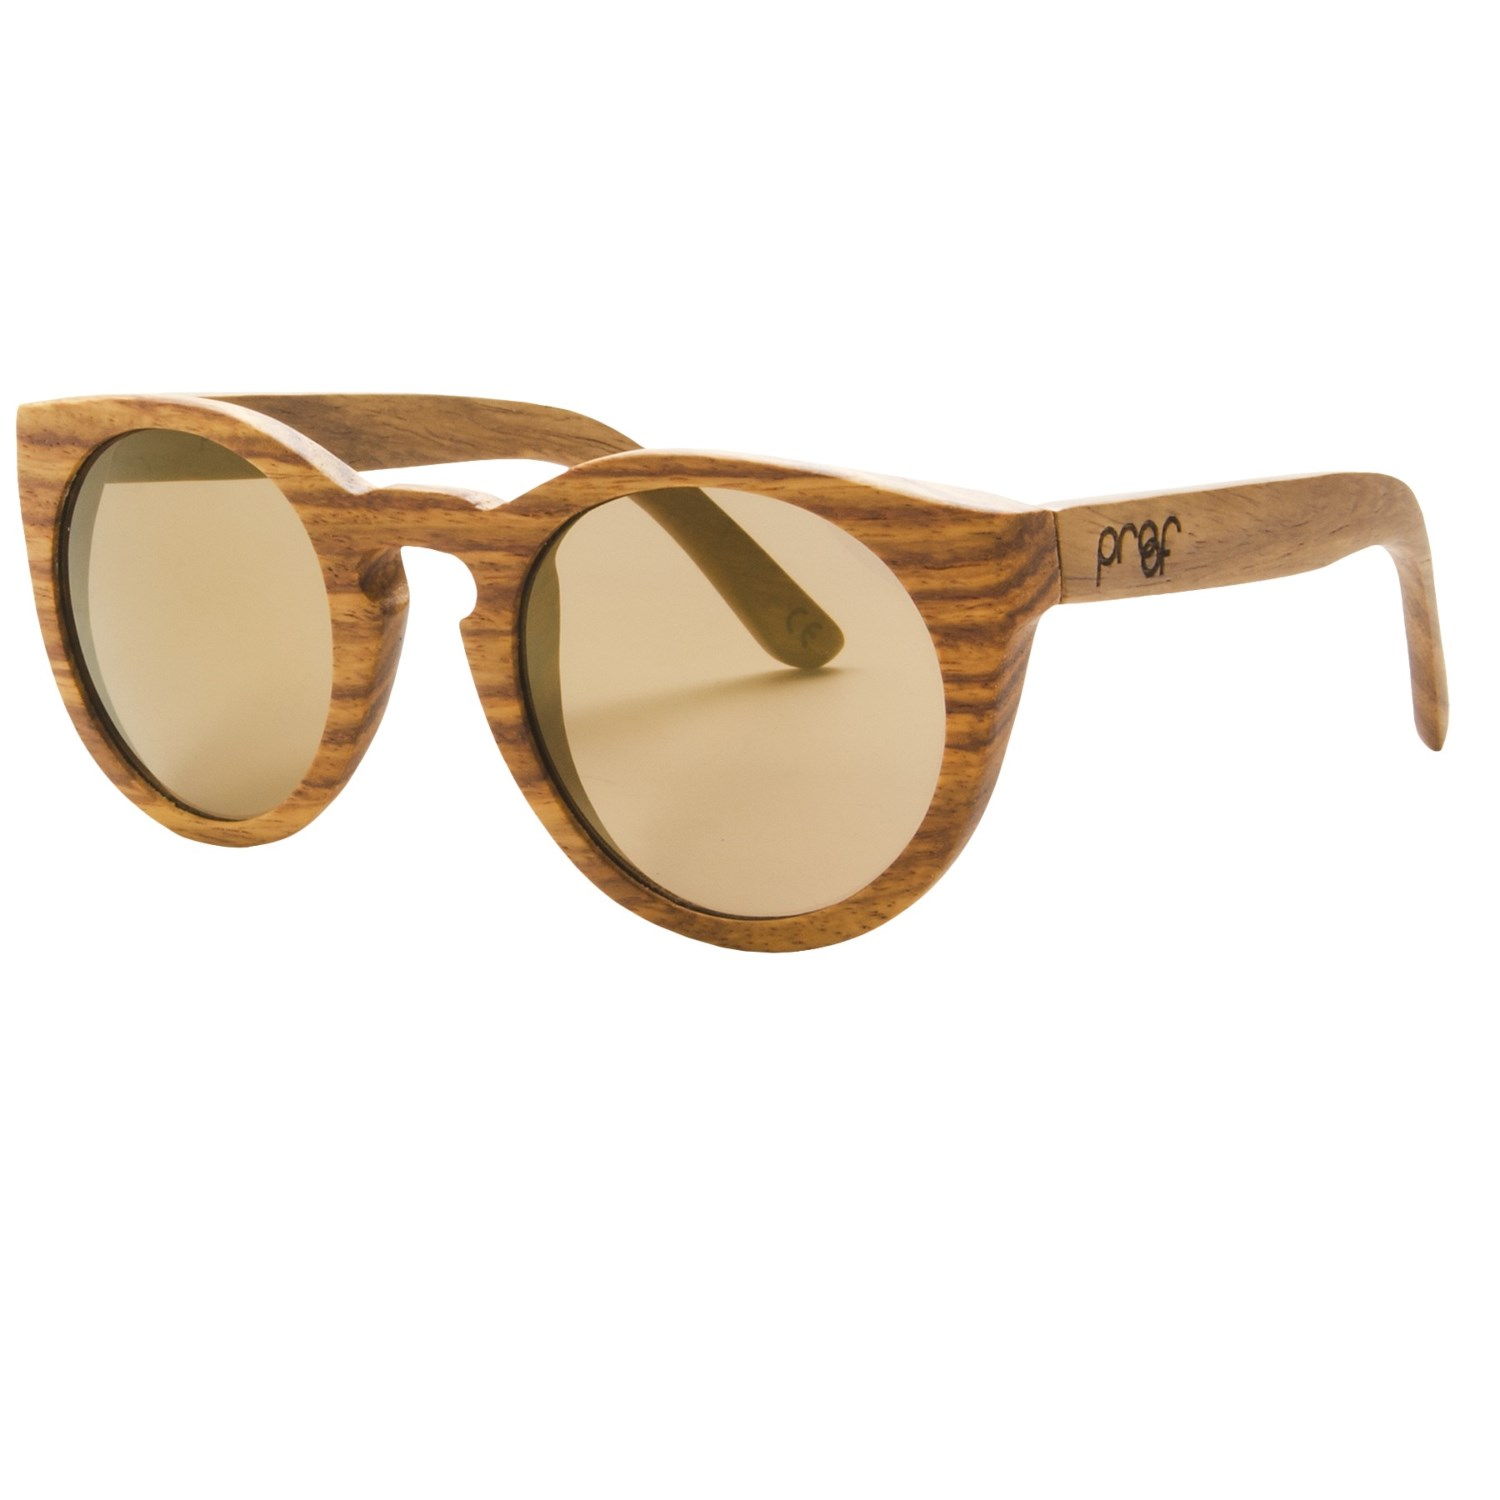 Wooden Frame Glasses Nz : Proof Eyewear Bogus Sunglasses - Wood Frame, Gold Lenses ...